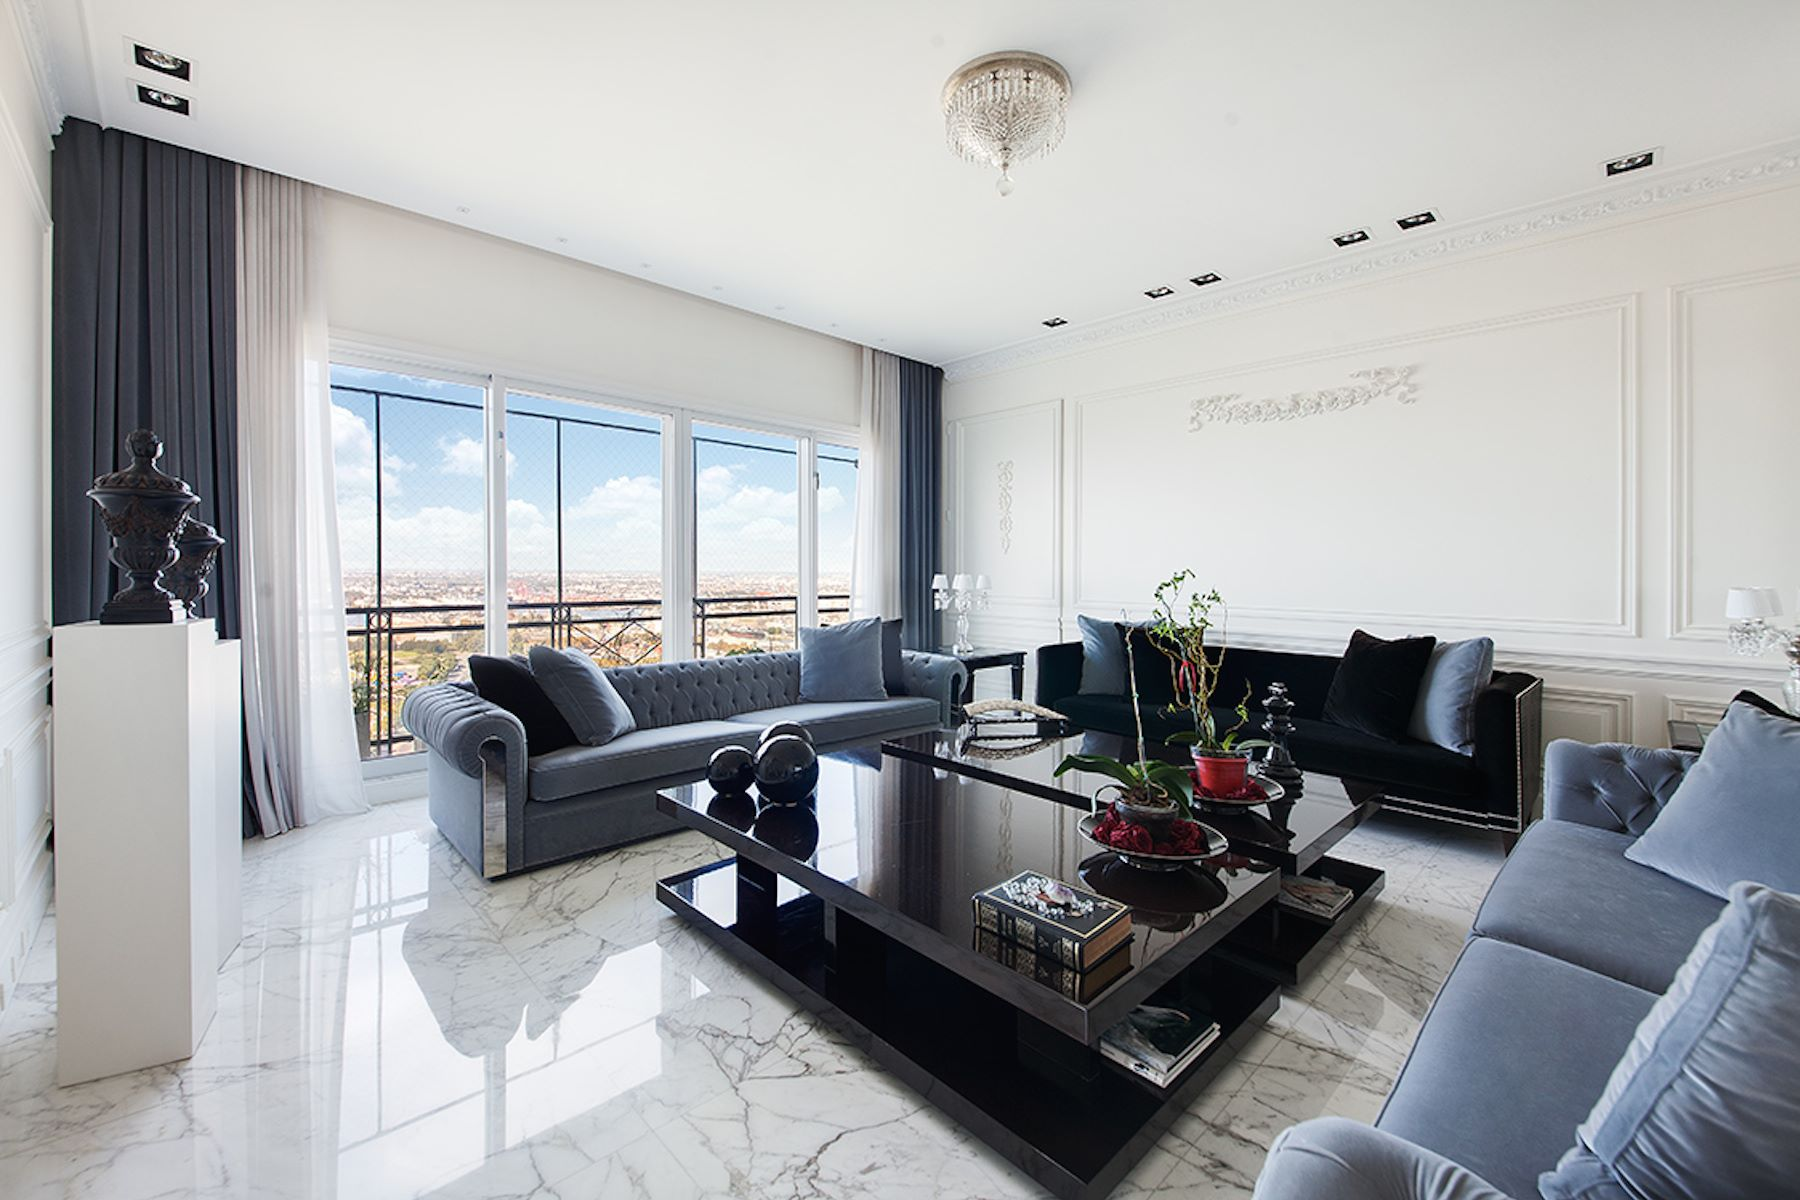 Apartments for Sale at Refined Residence in Chateau Building - Puerto Madero Puerto Madero, Buenos Aires, Buenos Aires Argentina